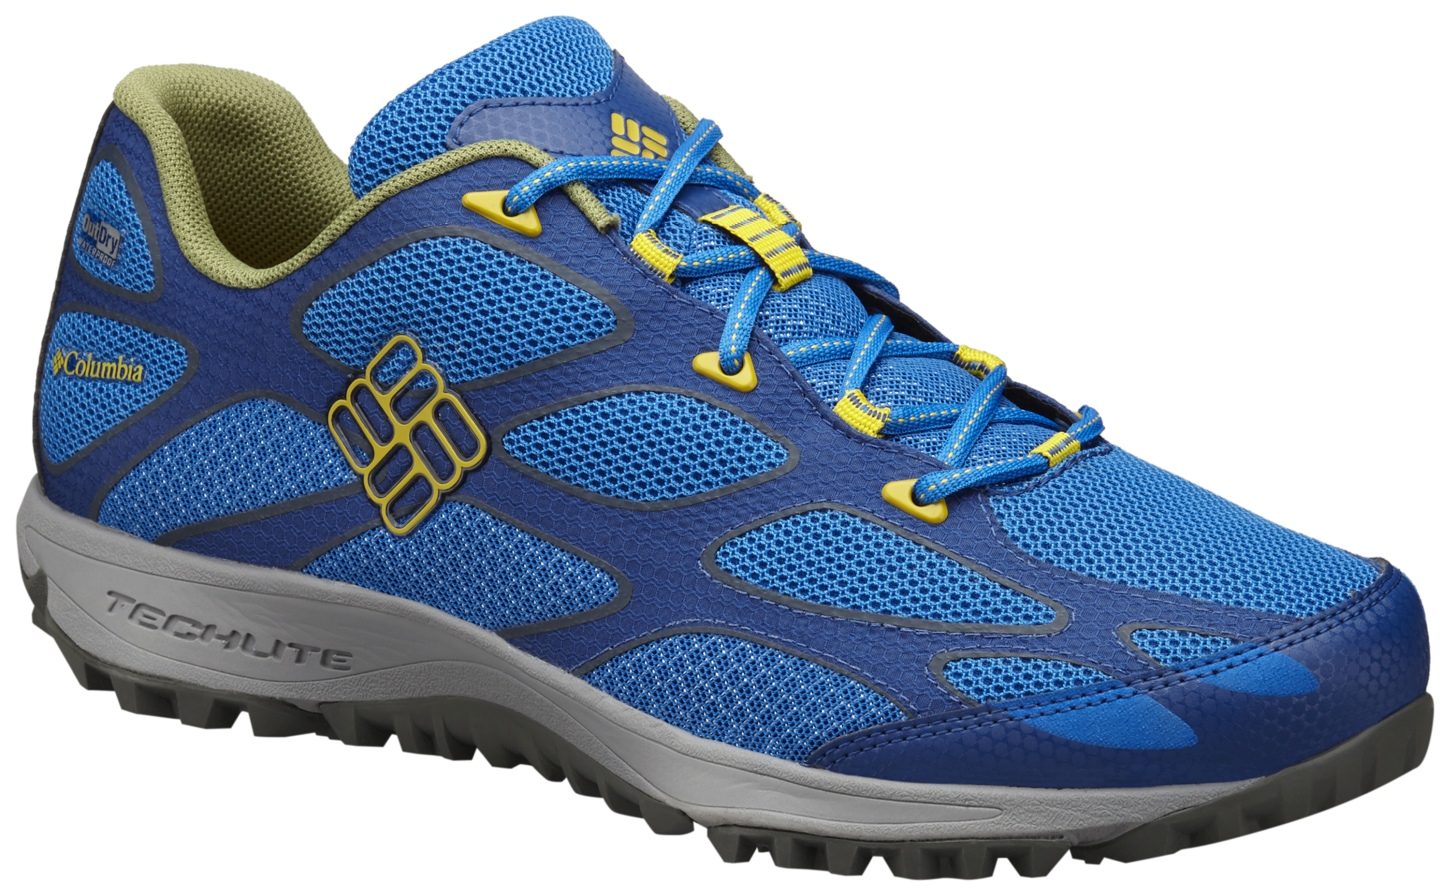 Columbia Men's Conspiracy IV Outdry® Trail Shoes Super Blue, Antique Moss-30